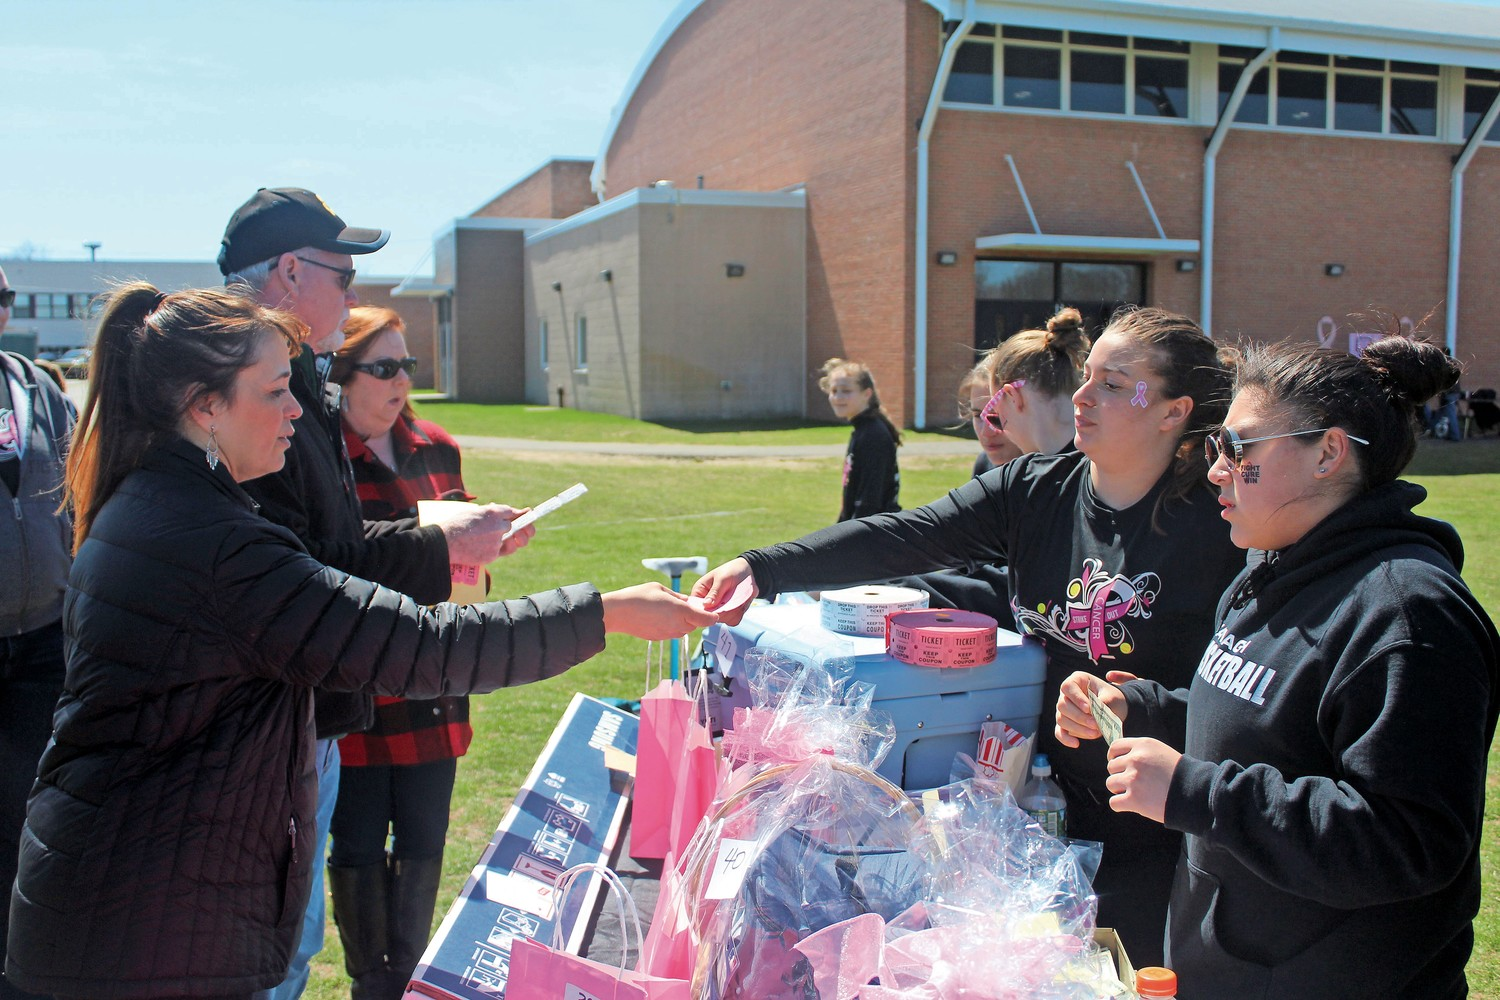 Members of the Wantagh and Seaford High School softball teams helped volunteers run the Strike Out Cancer fundraiser's 50/50 and regular raffles.